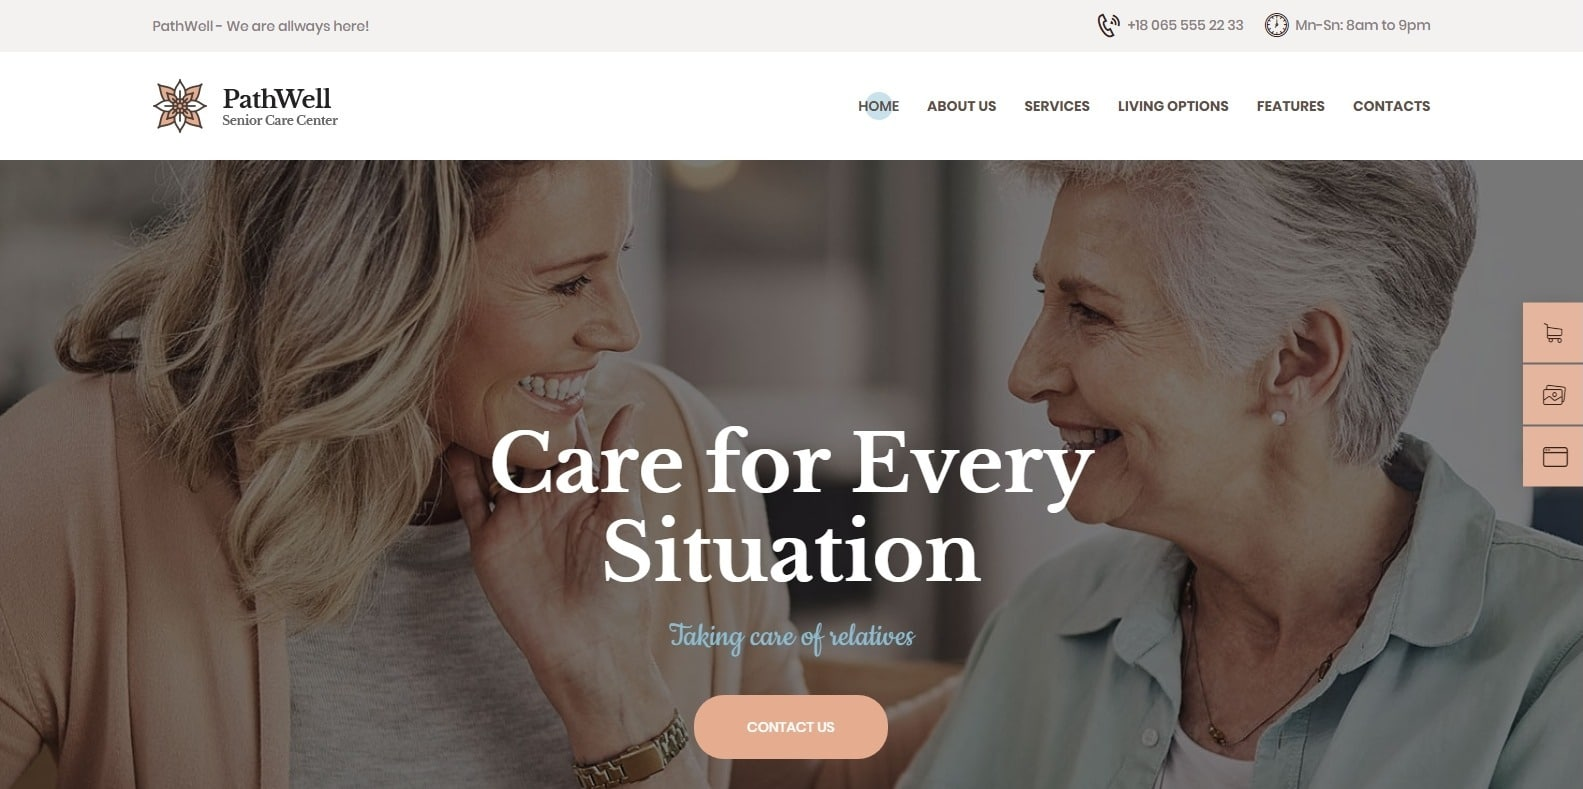 pathwell-medical-website-template